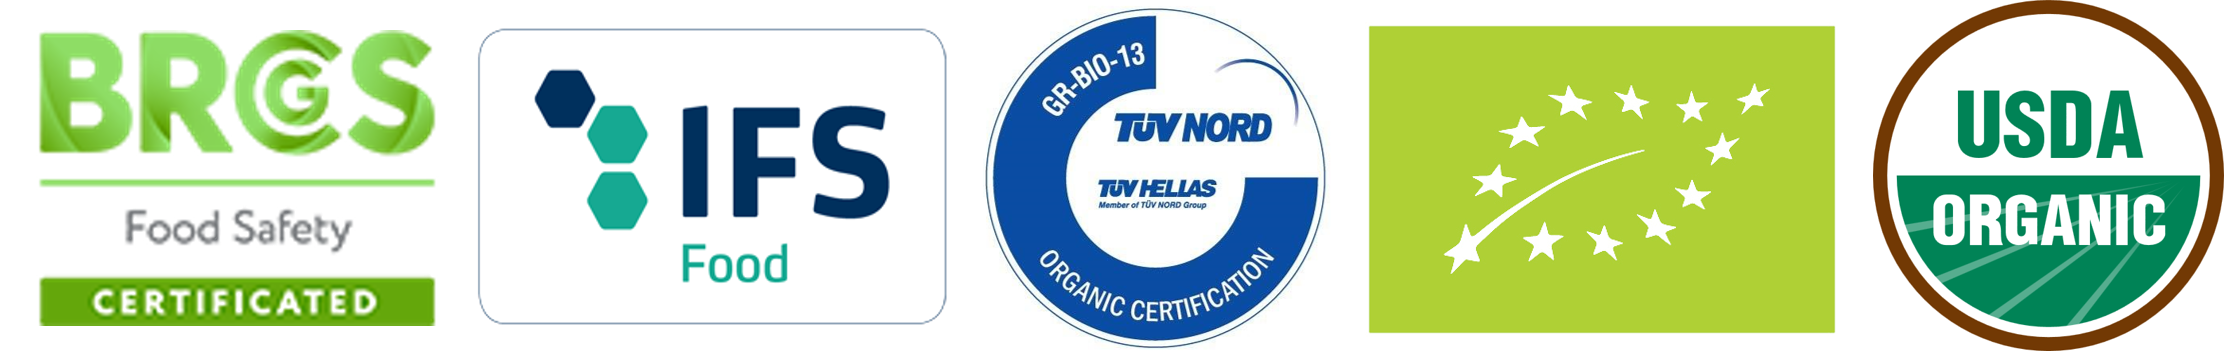 PVG Hellas - BRC certification - TUV Hellas